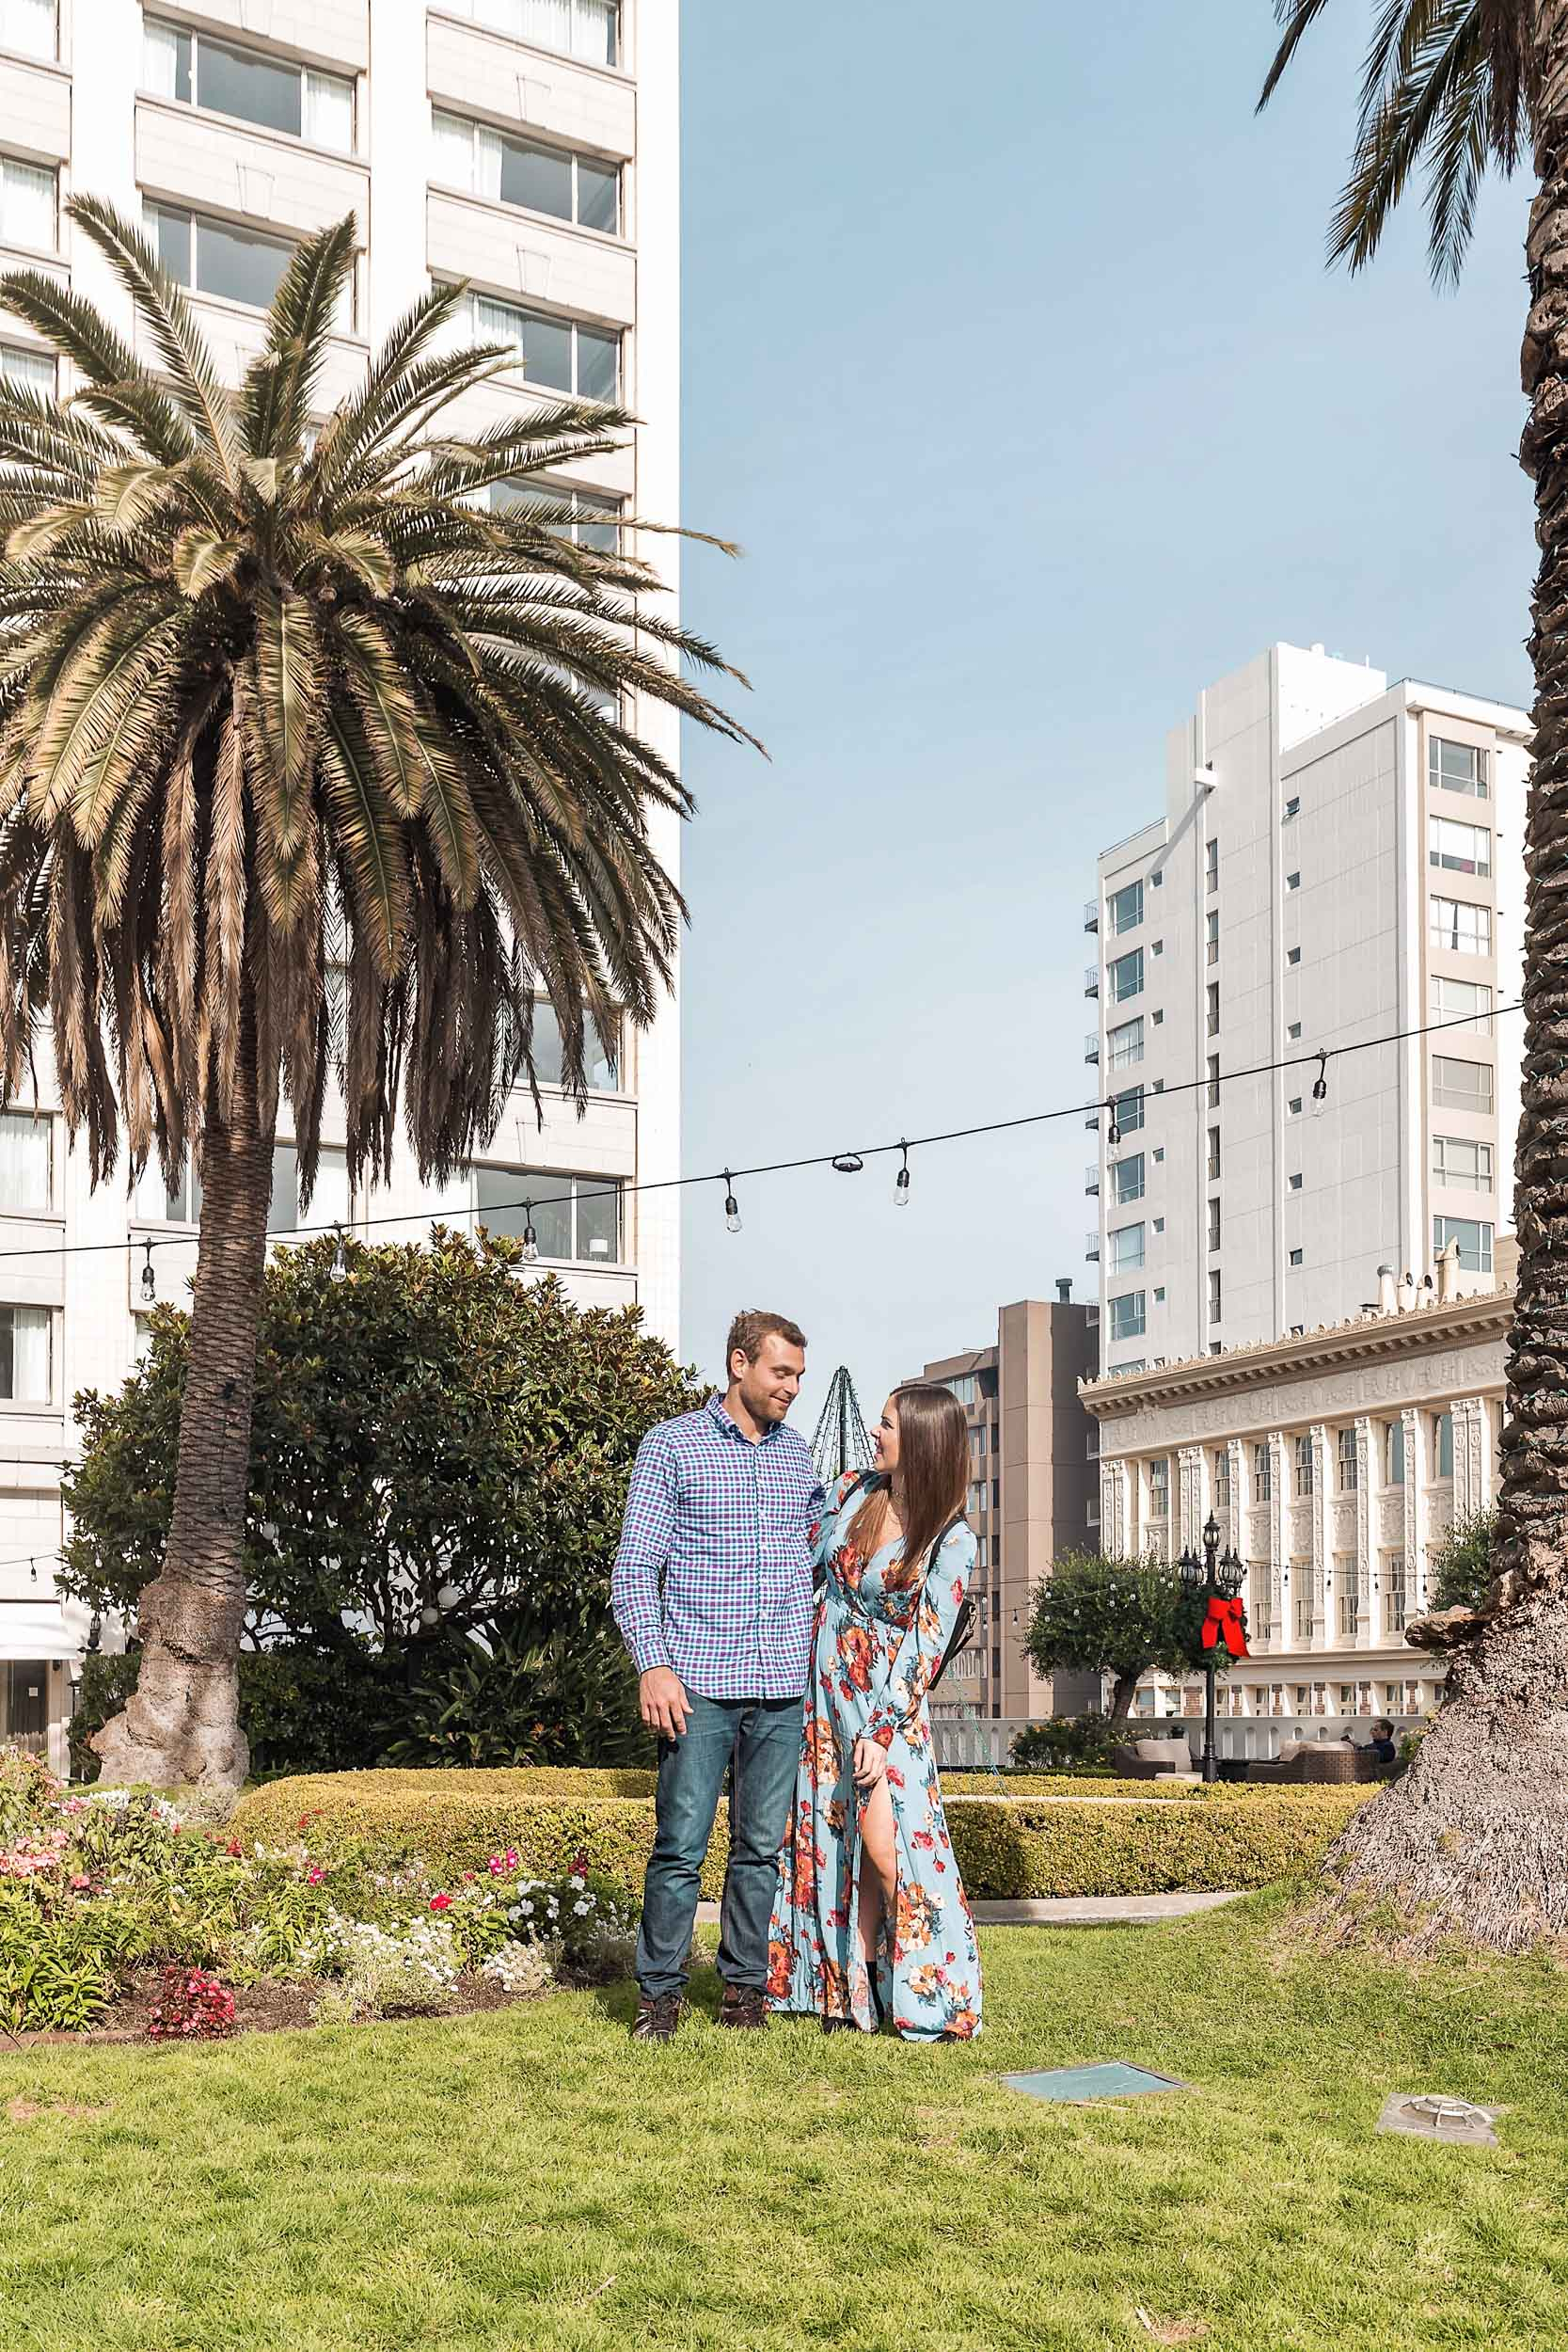 The rooftop garden on top of The Fairmont San Francisco offers beautiful skyline city views and is a great place to relax in the sunshine below the palm trees